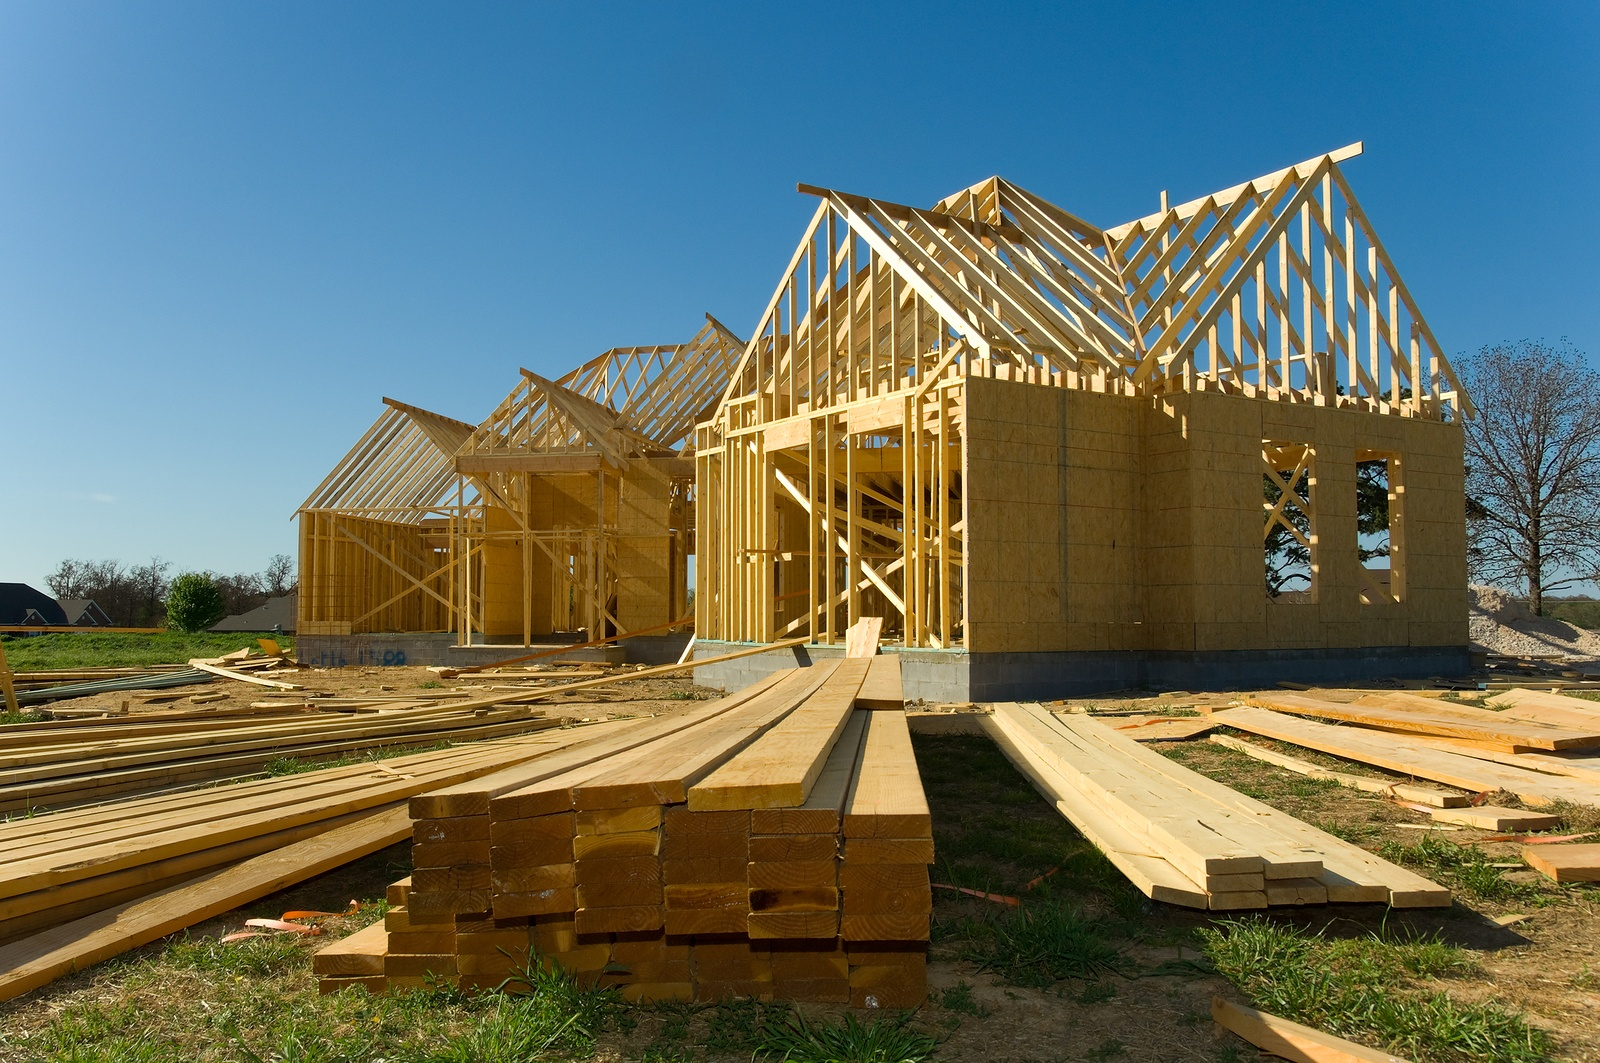 arizona carpentry contractor license